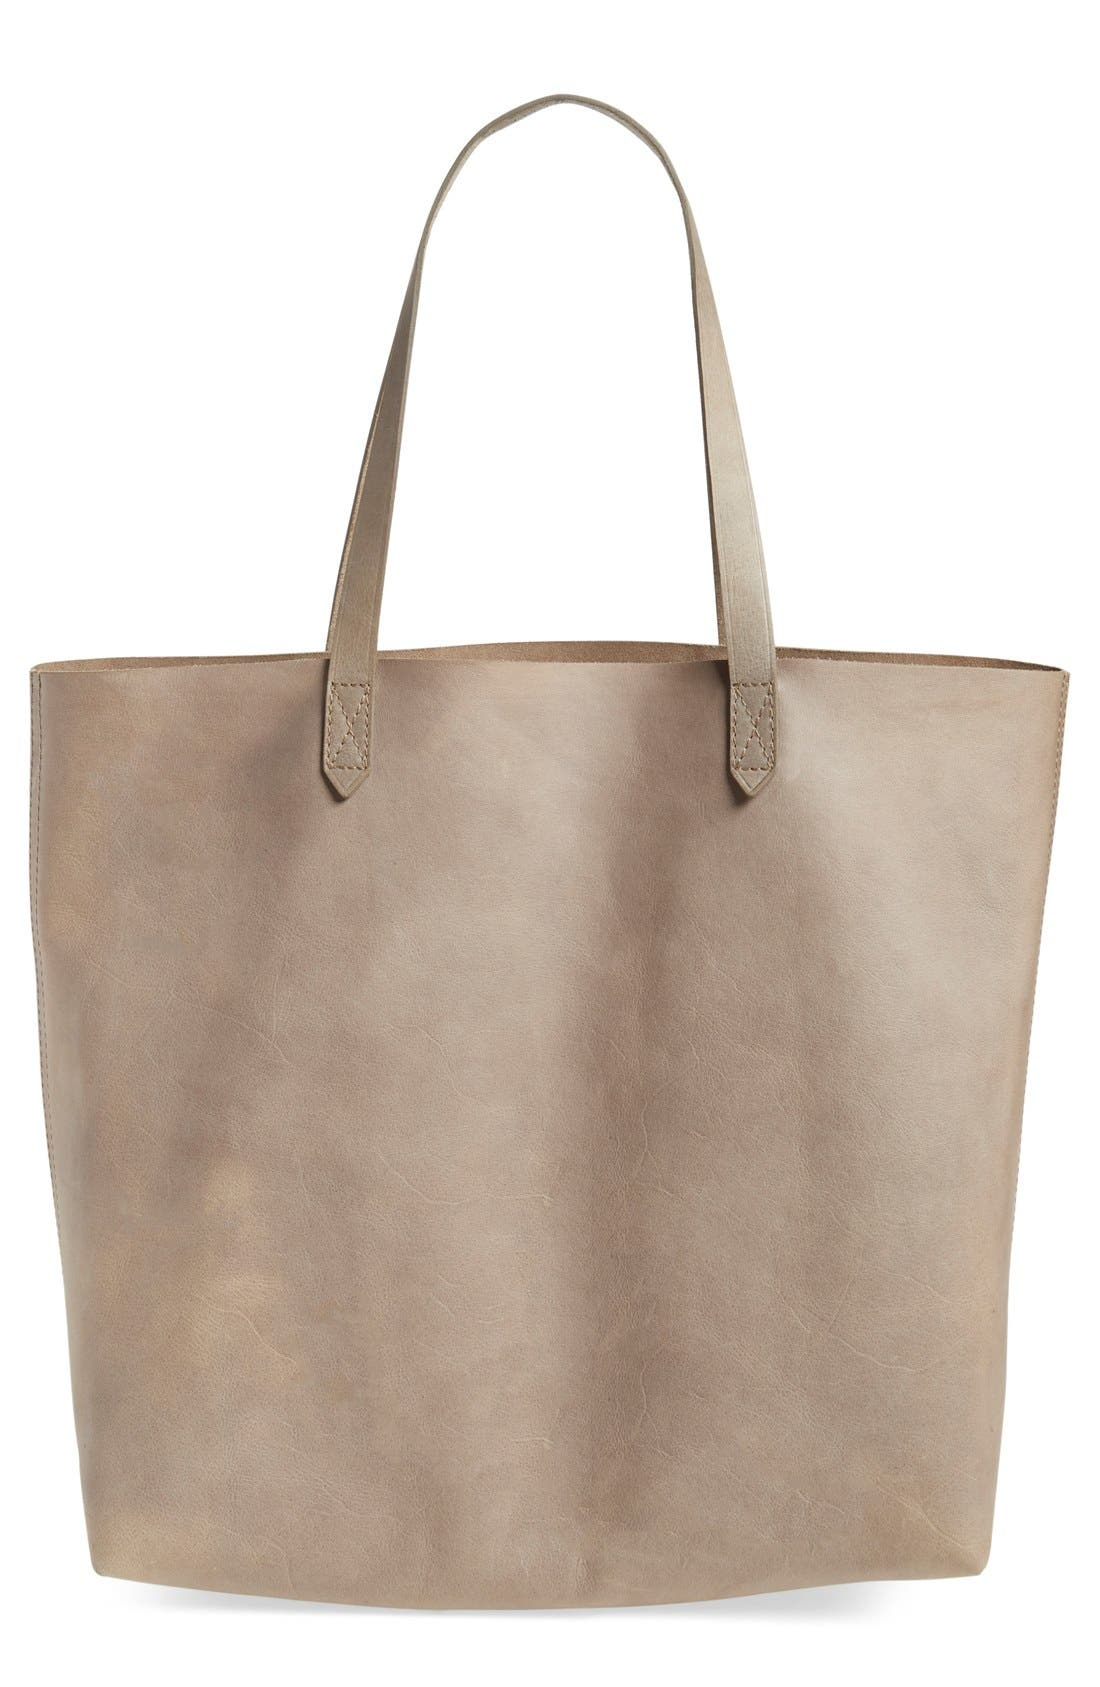 Alternate Image 1 Selected - Madewell 'Transport' Leather Tote